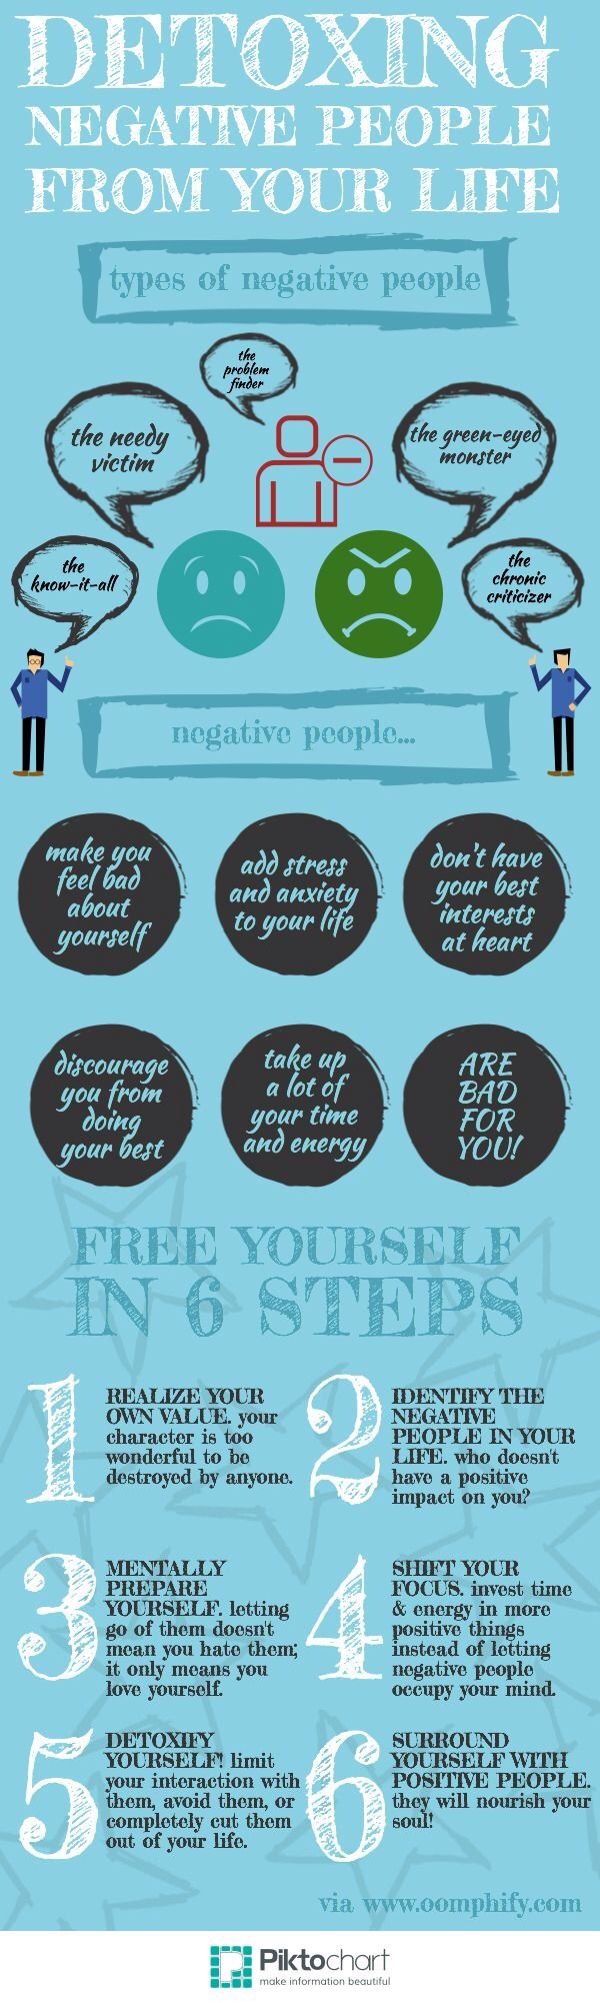 How to detox from negative people